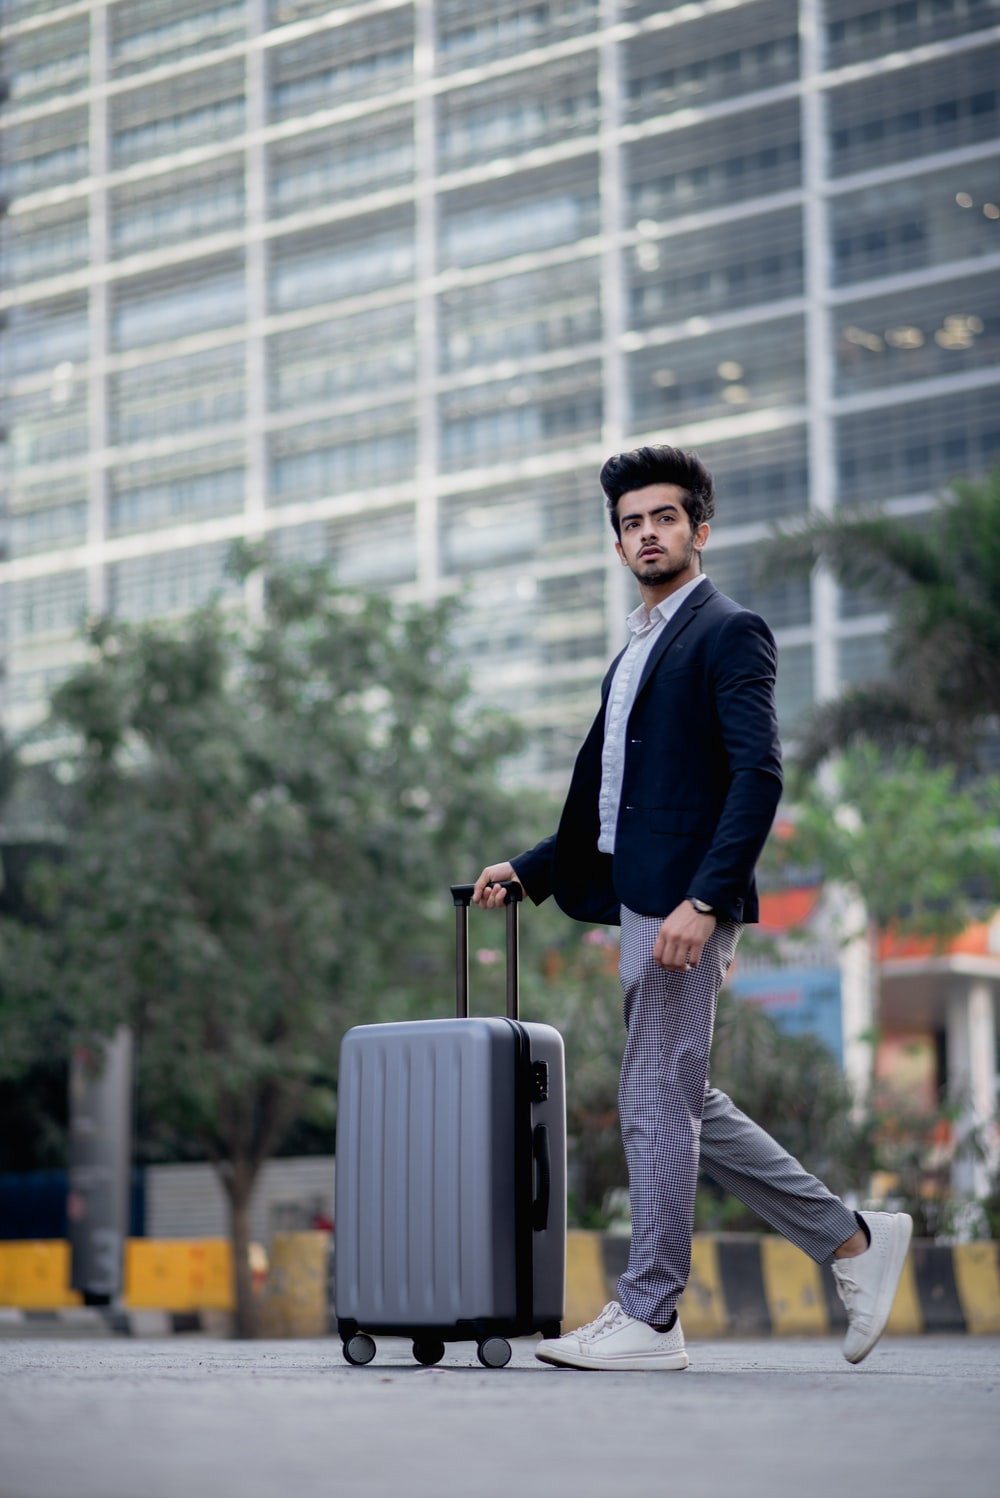 selective focus photography of man pulling luggage along concrete road